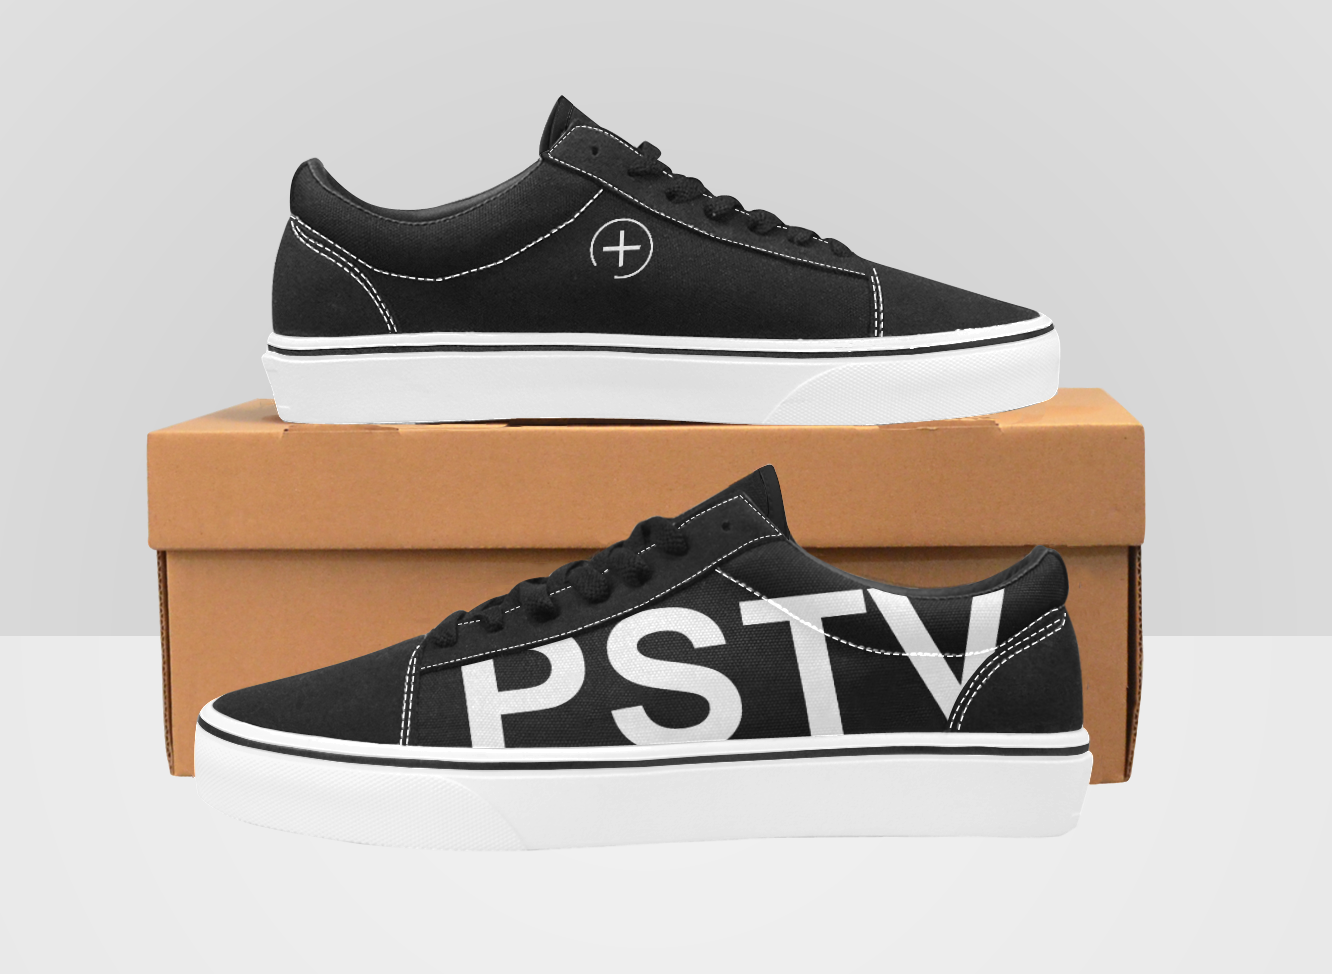 SHOES PSTV